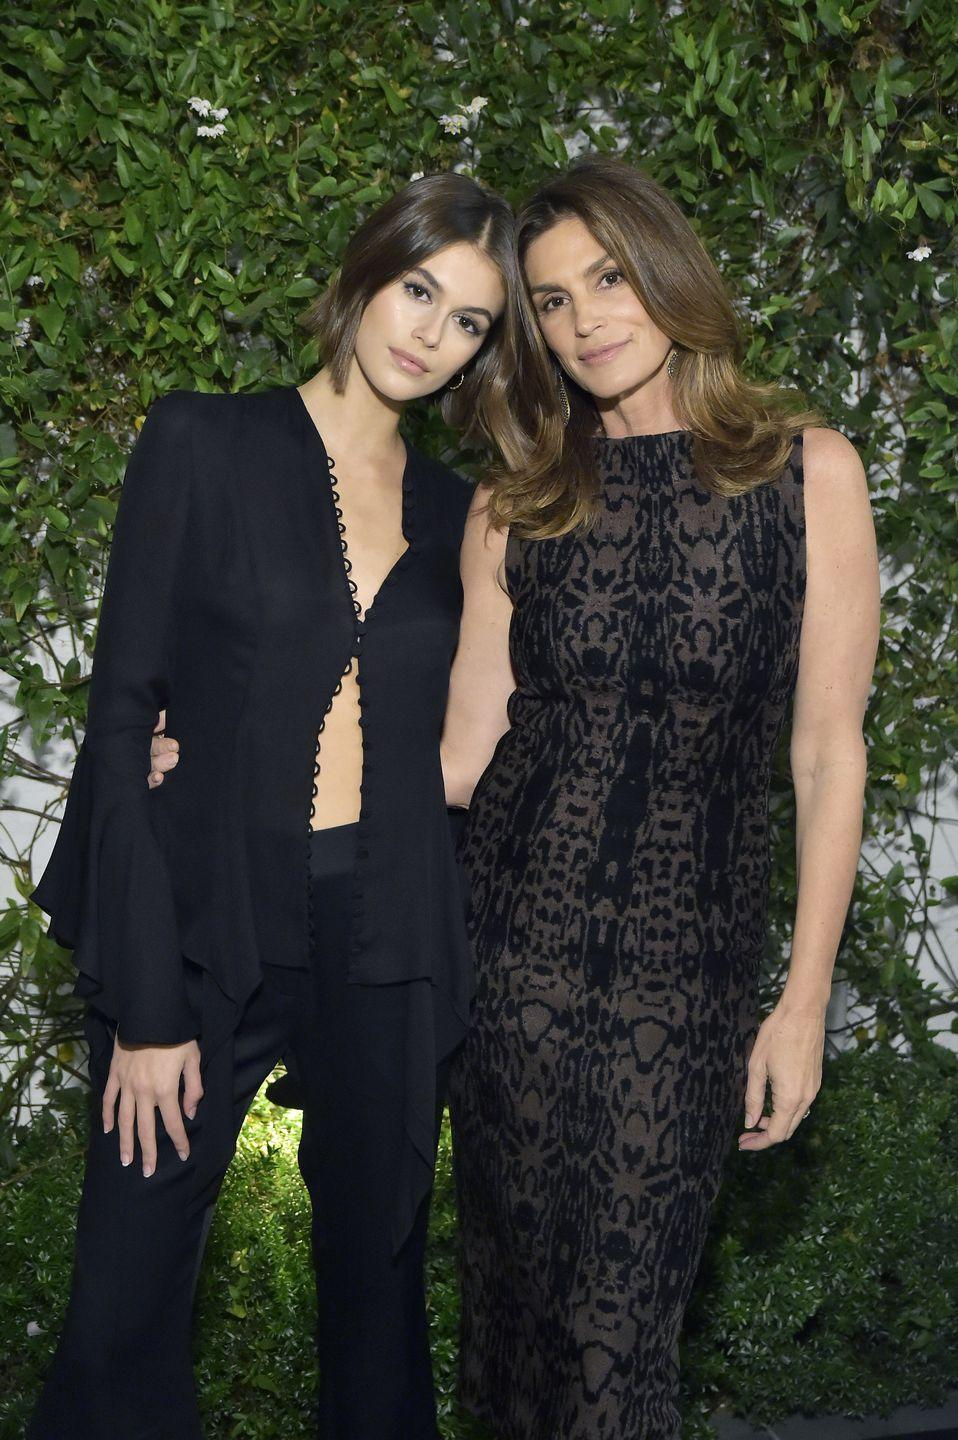 """<p>It's not hard to see why <a href=""""https://www.elle.com/uk/fashion/celebrity-style/g32572/kaia-gerber-best-runway-looks/?slide=1"""" rel=""""nofollow noopener"""" target=""""_blank"""" data-ylk=""""slk:Kaia Gerber"""" class=""""link rapid-noclick-resp"""">Kaia Gerber</a> and supermodel and actress Cindy Crawford have become successful supermodels, with their svelte figures, strong jawlines and perfectly-sculpted brows. </p><p>The 1990s catwalk star recently spoke out to <a href=""""https://www.elle.com/uk/fashion/celebrity-style/a29436305/kaia-gerber-cindy-crawford-defends-modeling/"""" rel=""""nofollow noopener"""" target=""""_blank"""" data-ylk=""""slk:explain why it was important"""" class=""""link rapid-noclick-resp"""">explain why it was important</a> to let her daughter pursue a modelling career. 'I had no trepidation at all about saying yes to Kaia,' the 'Super' said in October. 'I felt comfortable and I was like, """"Go for it, have fun and I'm always here if you have a question"""".'</p>"""